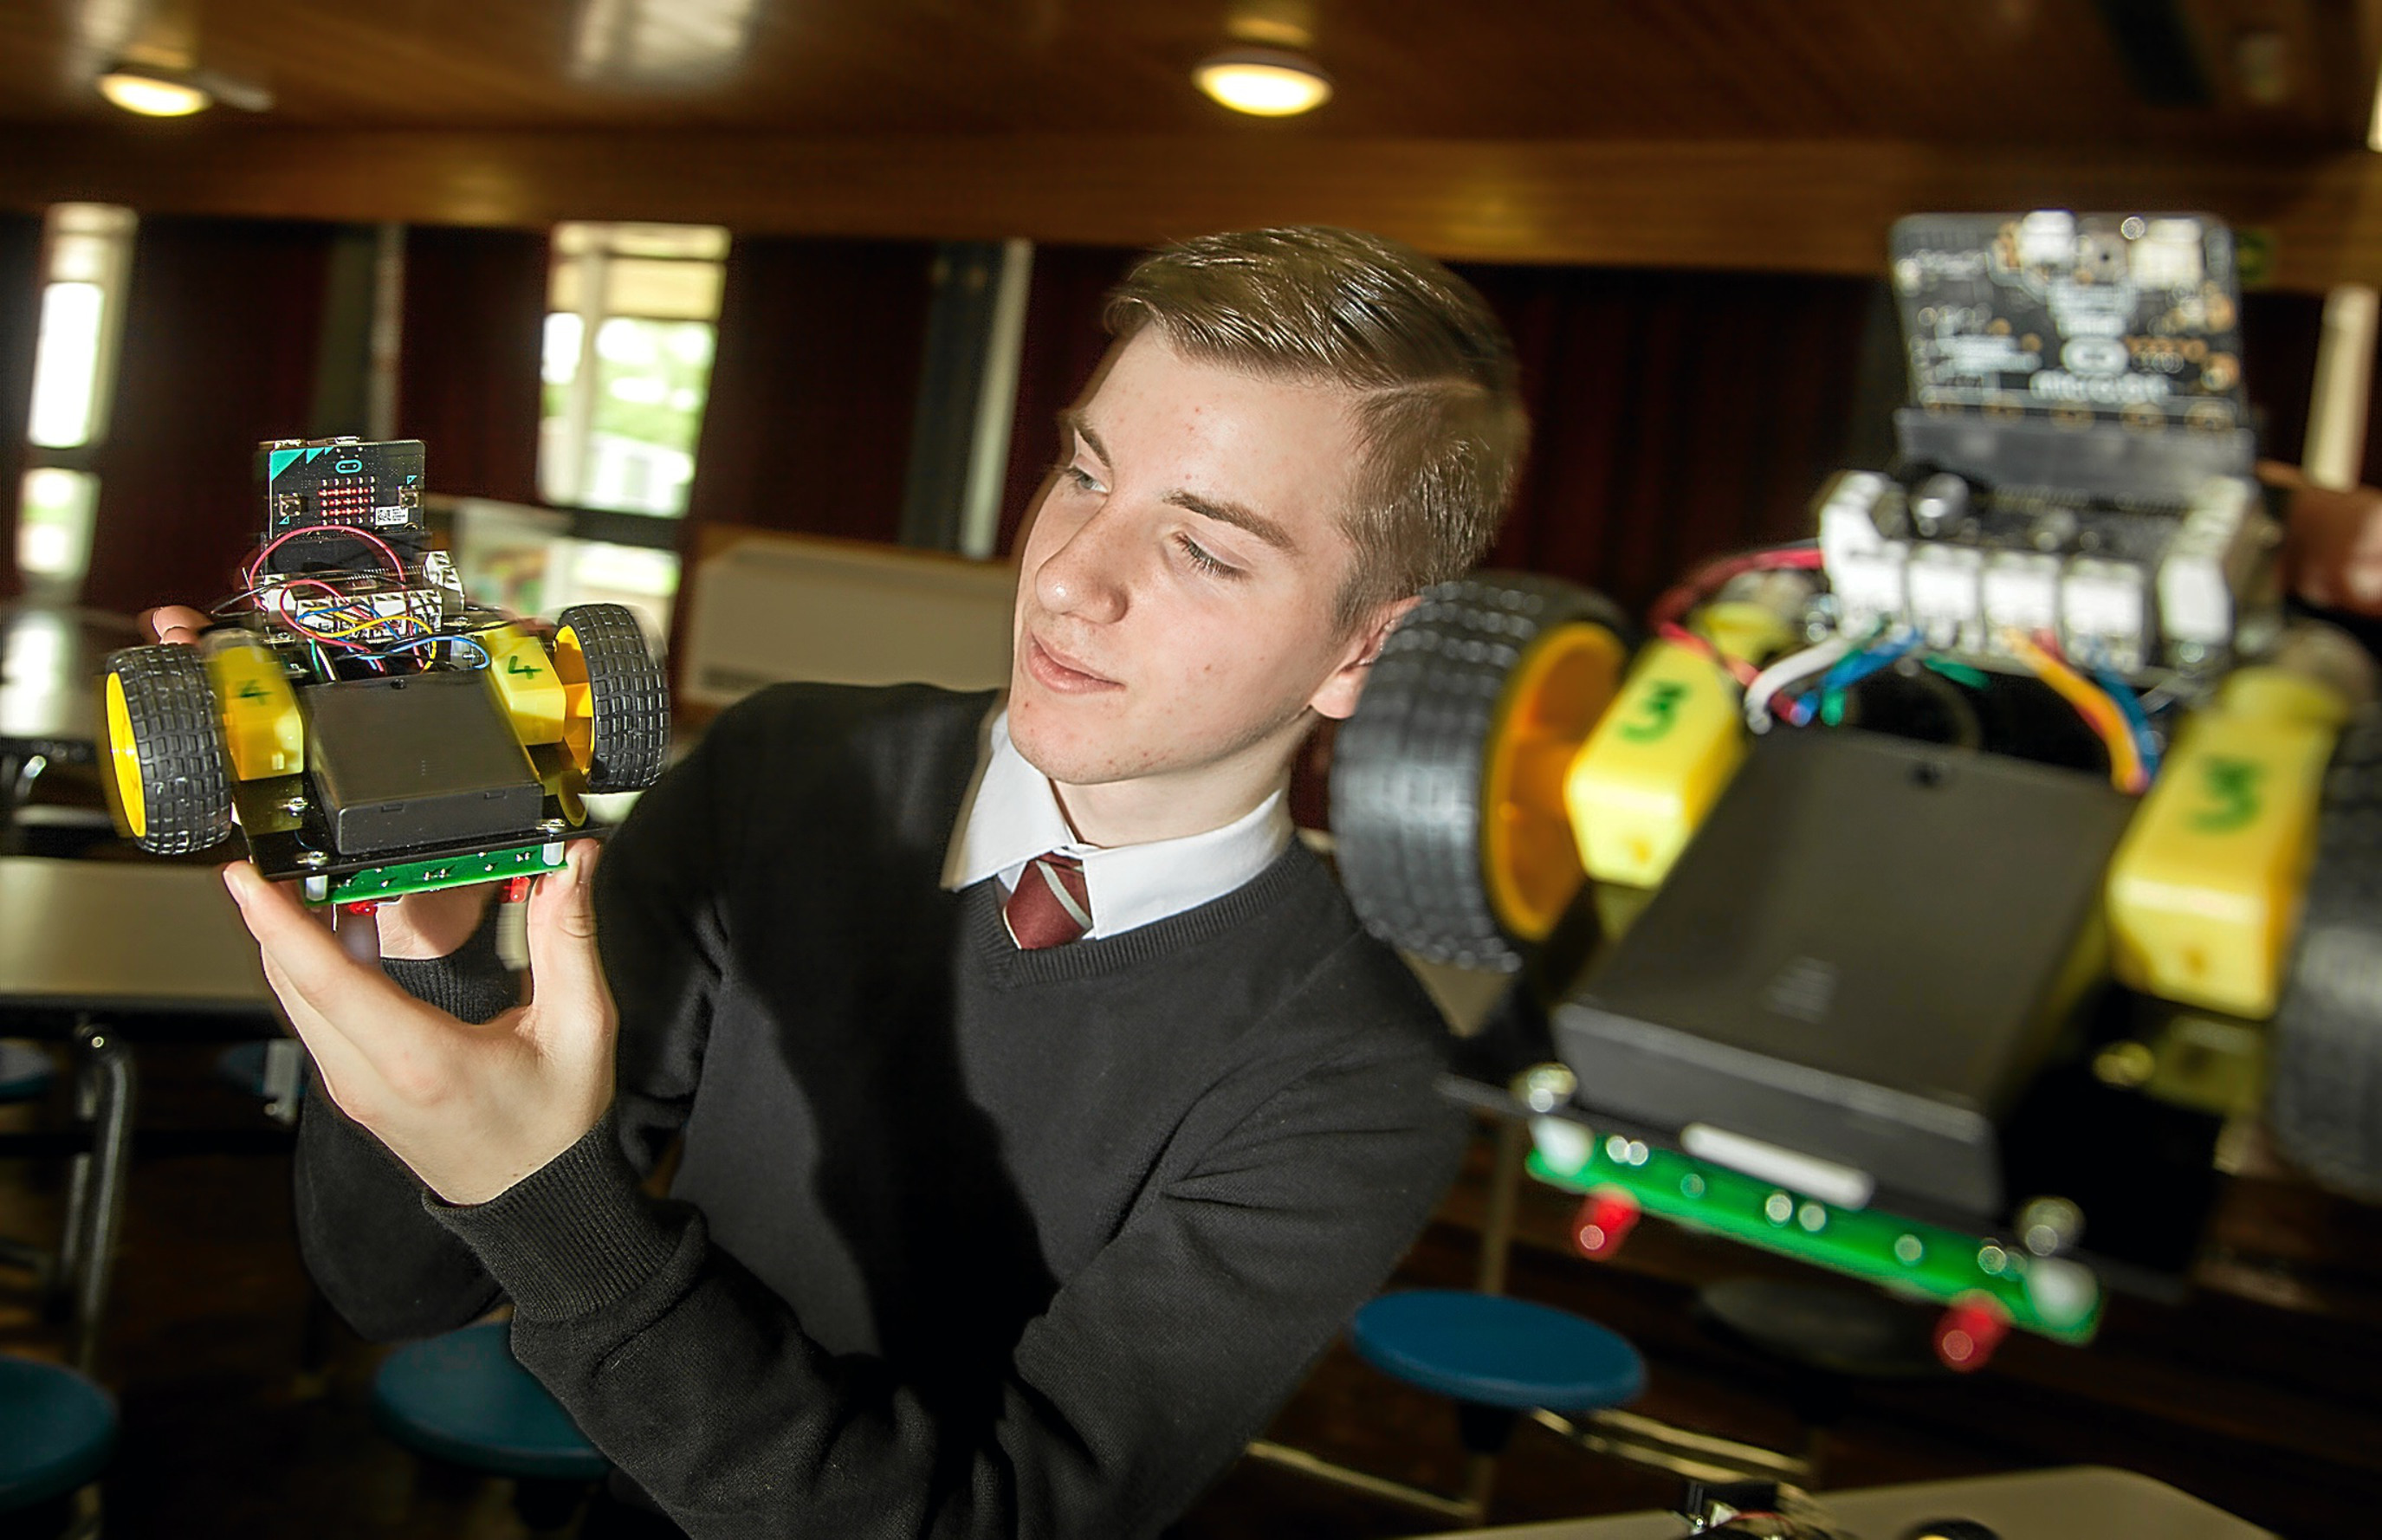 Sixth year pupil Fraser Steele with a microbit-controlled robot.